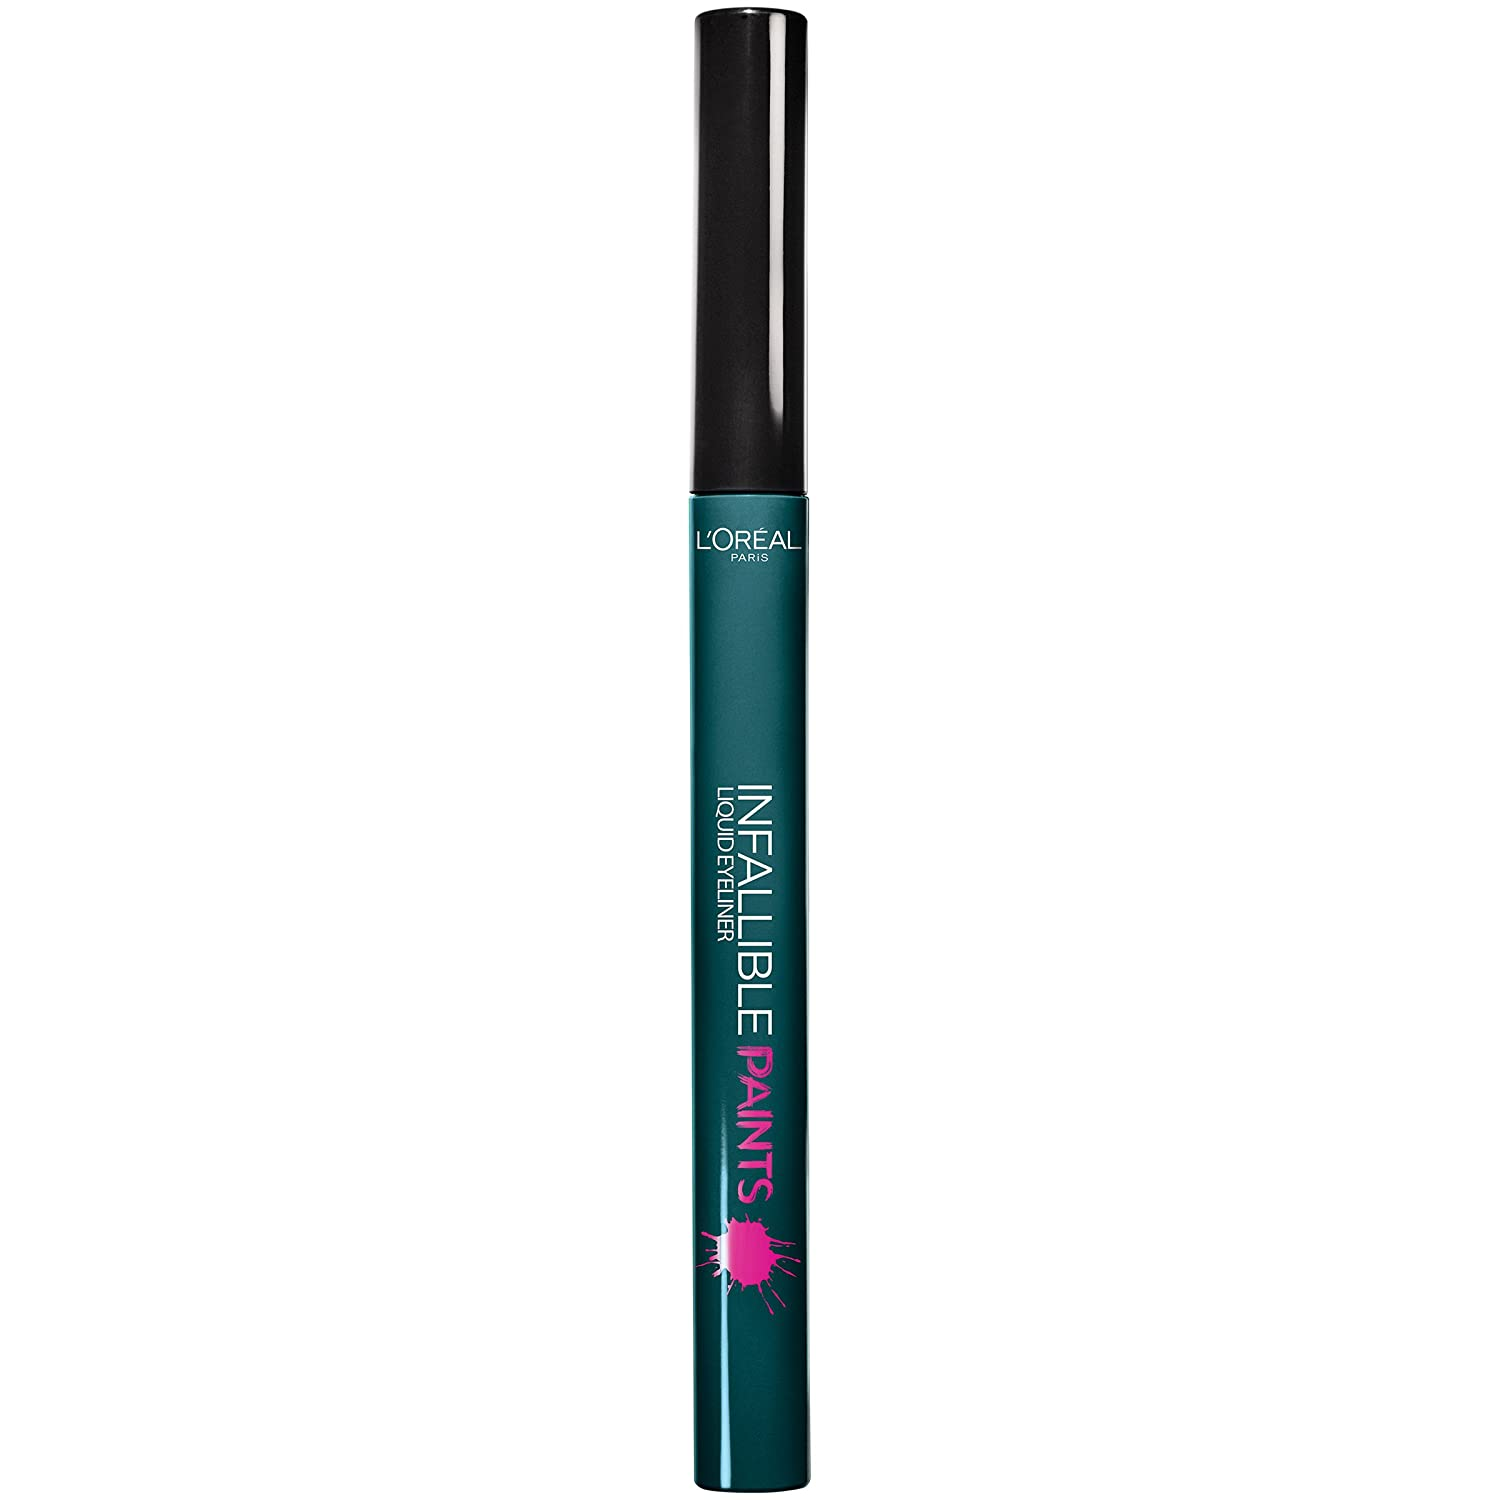 L'Oreal Paris Infallible paints eyeliner vivid aqua, 0.034 Fl Oz L' Oreal Paris